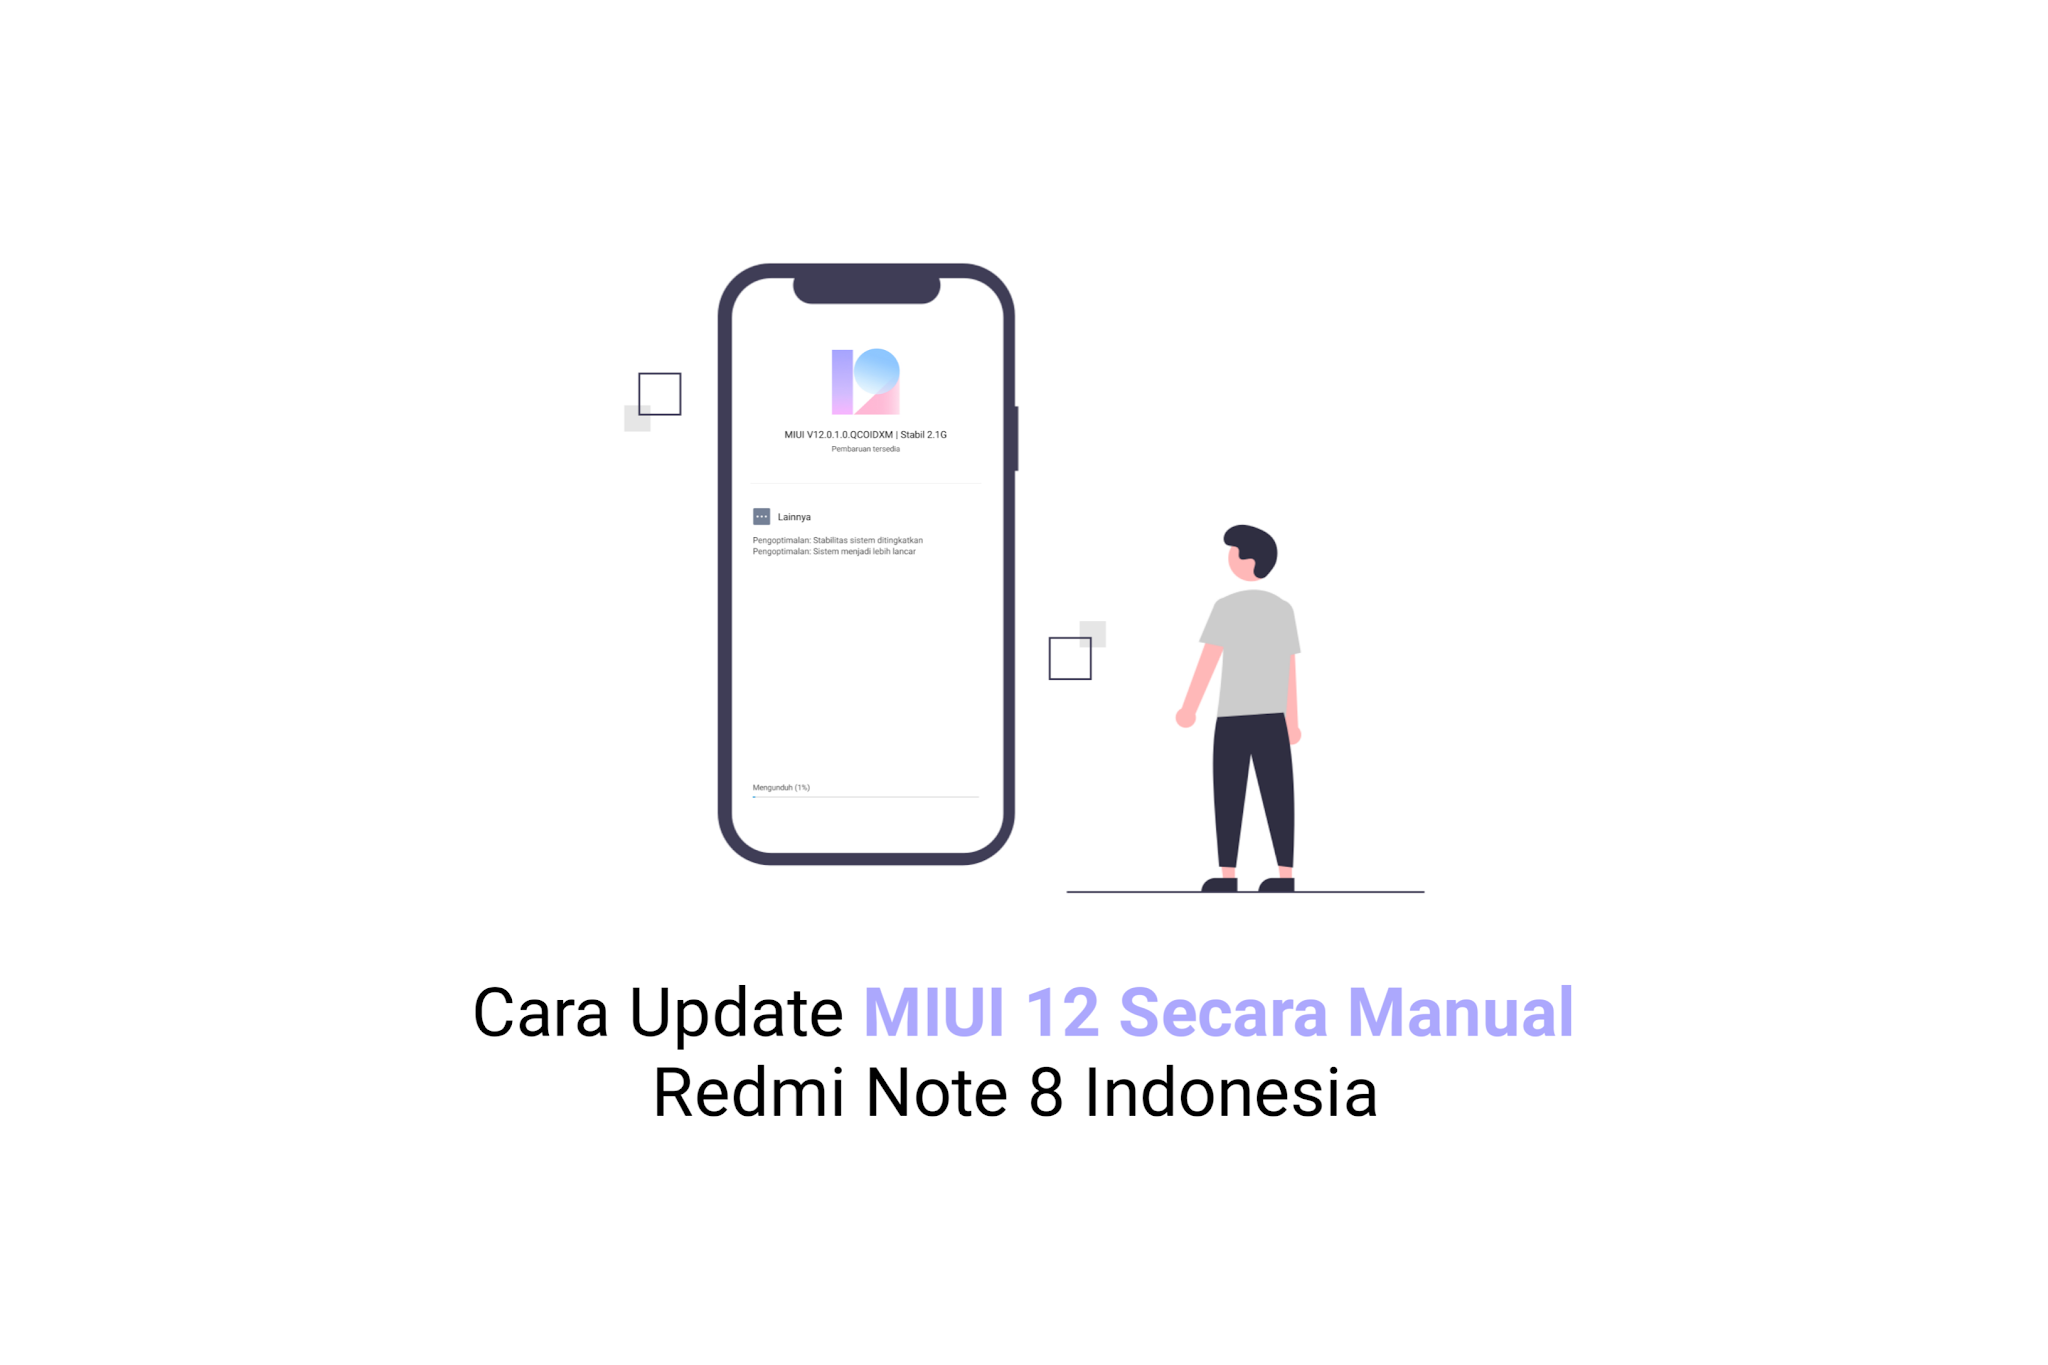 Update MIUI 12 Redmi Note 8 Indonesia Secara Manual